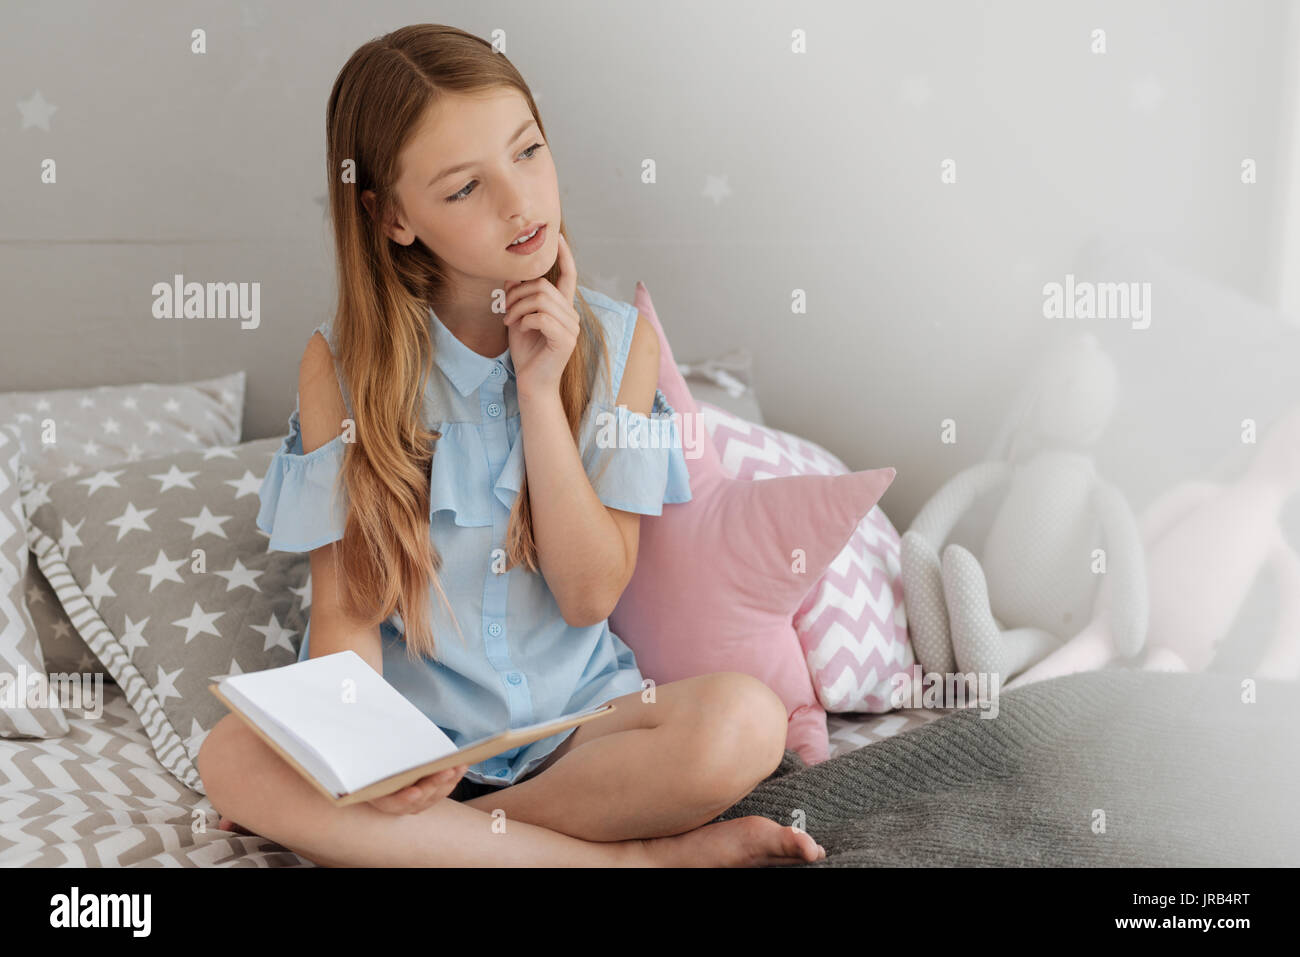 Curious schoolgirl thinking about something - Stock Image